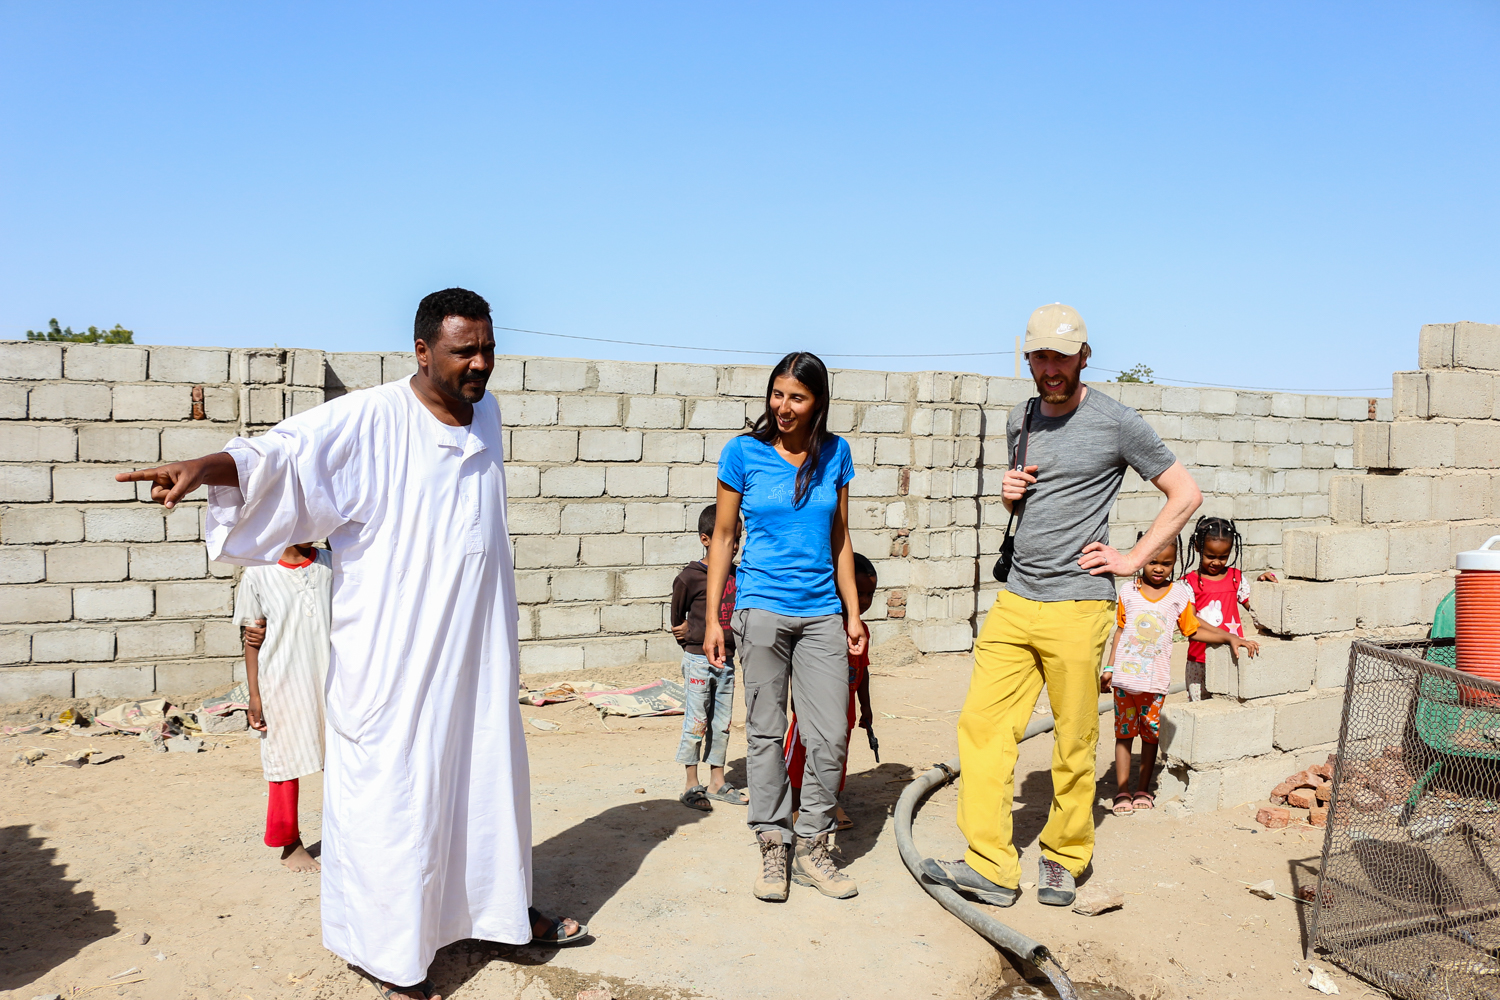 Sudanese hospitality guests